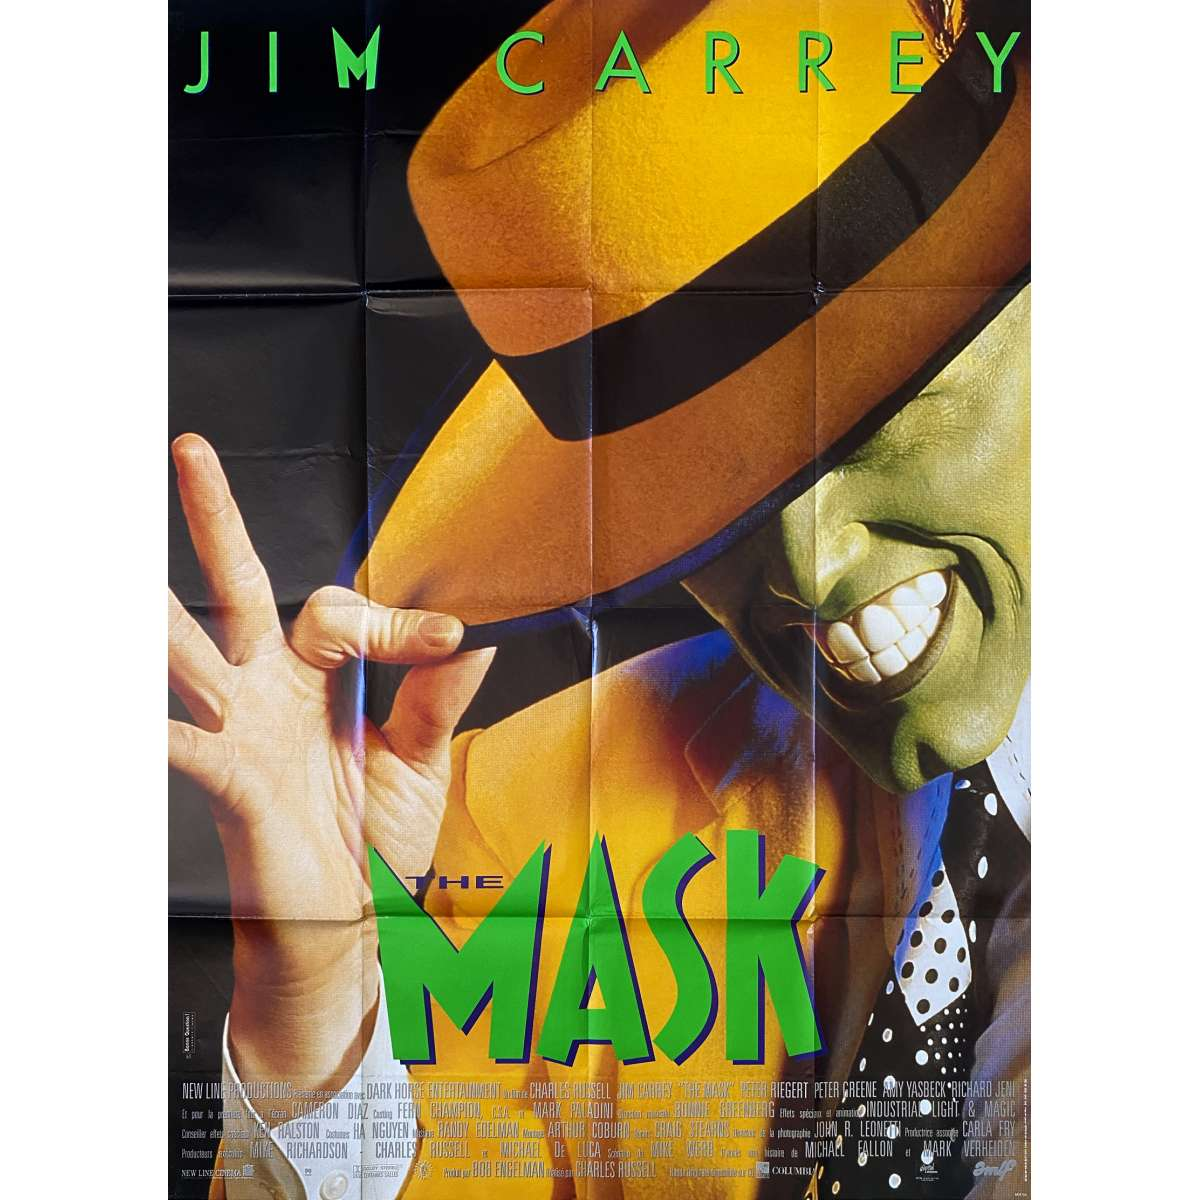 THE MASK Original Movie Poster  - 47x63 in. - 1994 - Chuck Russel, Jim Carrey